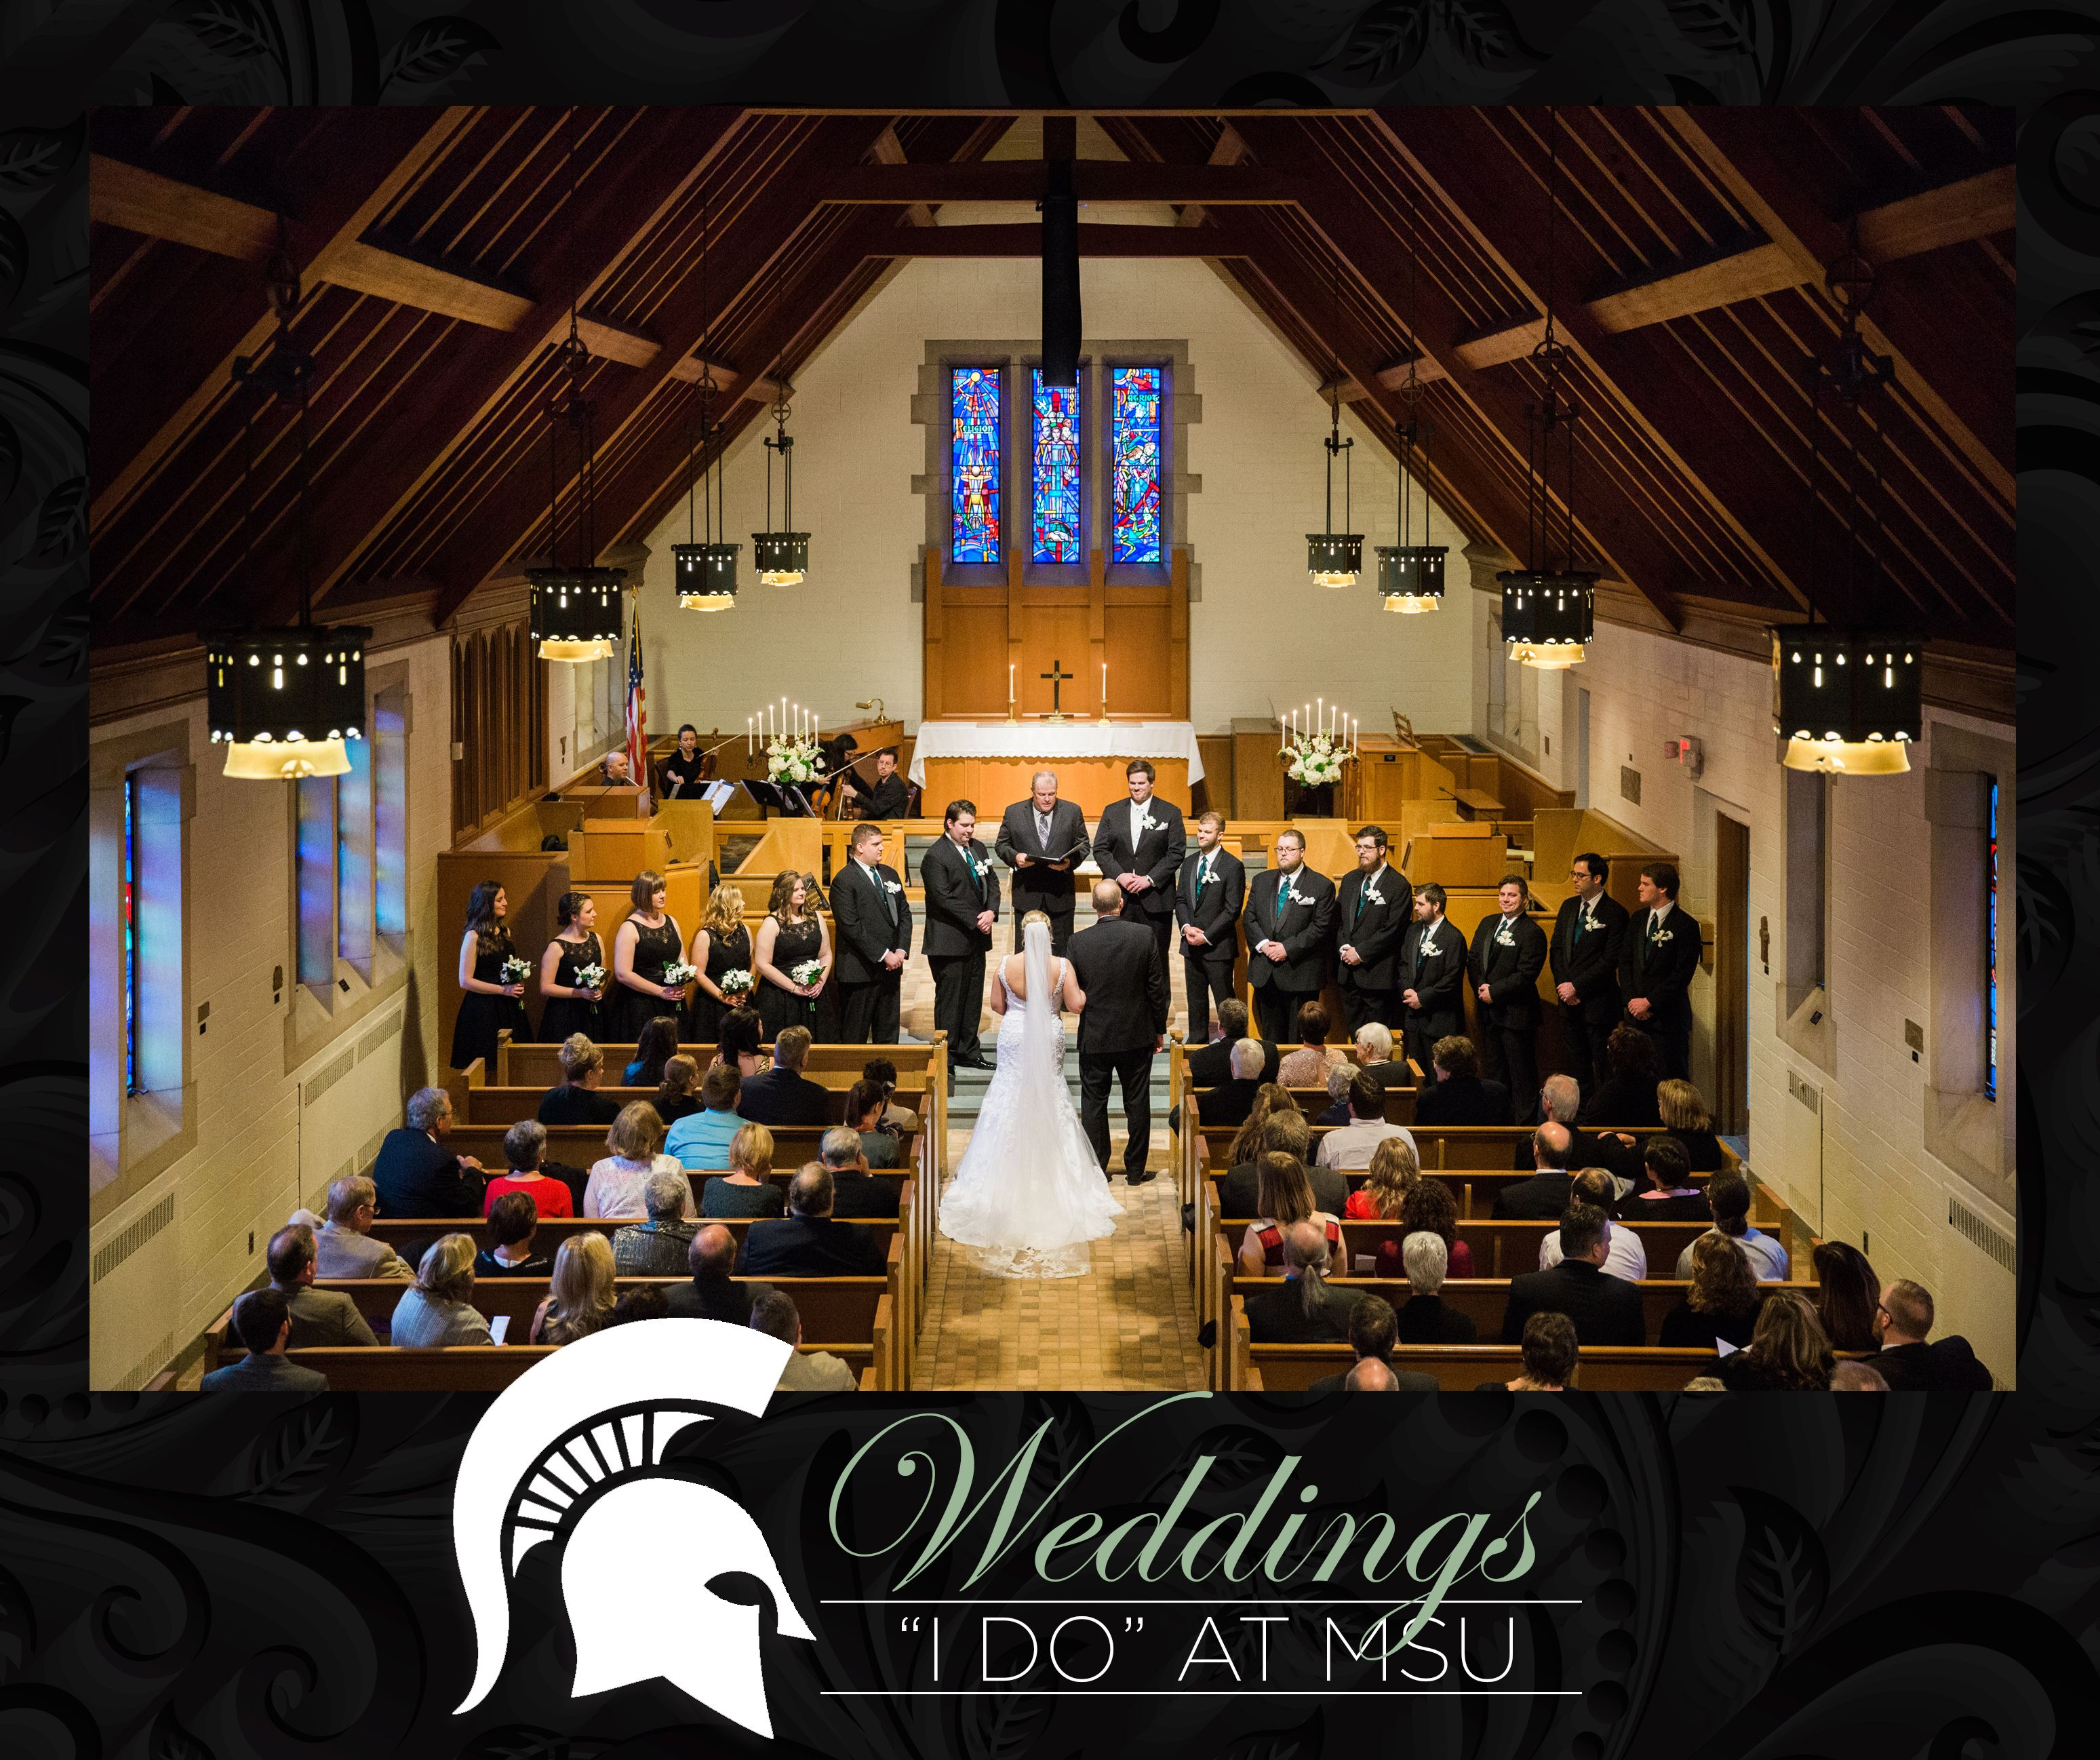 Have Your Wedding At Msu Michigan State University In East Lansing